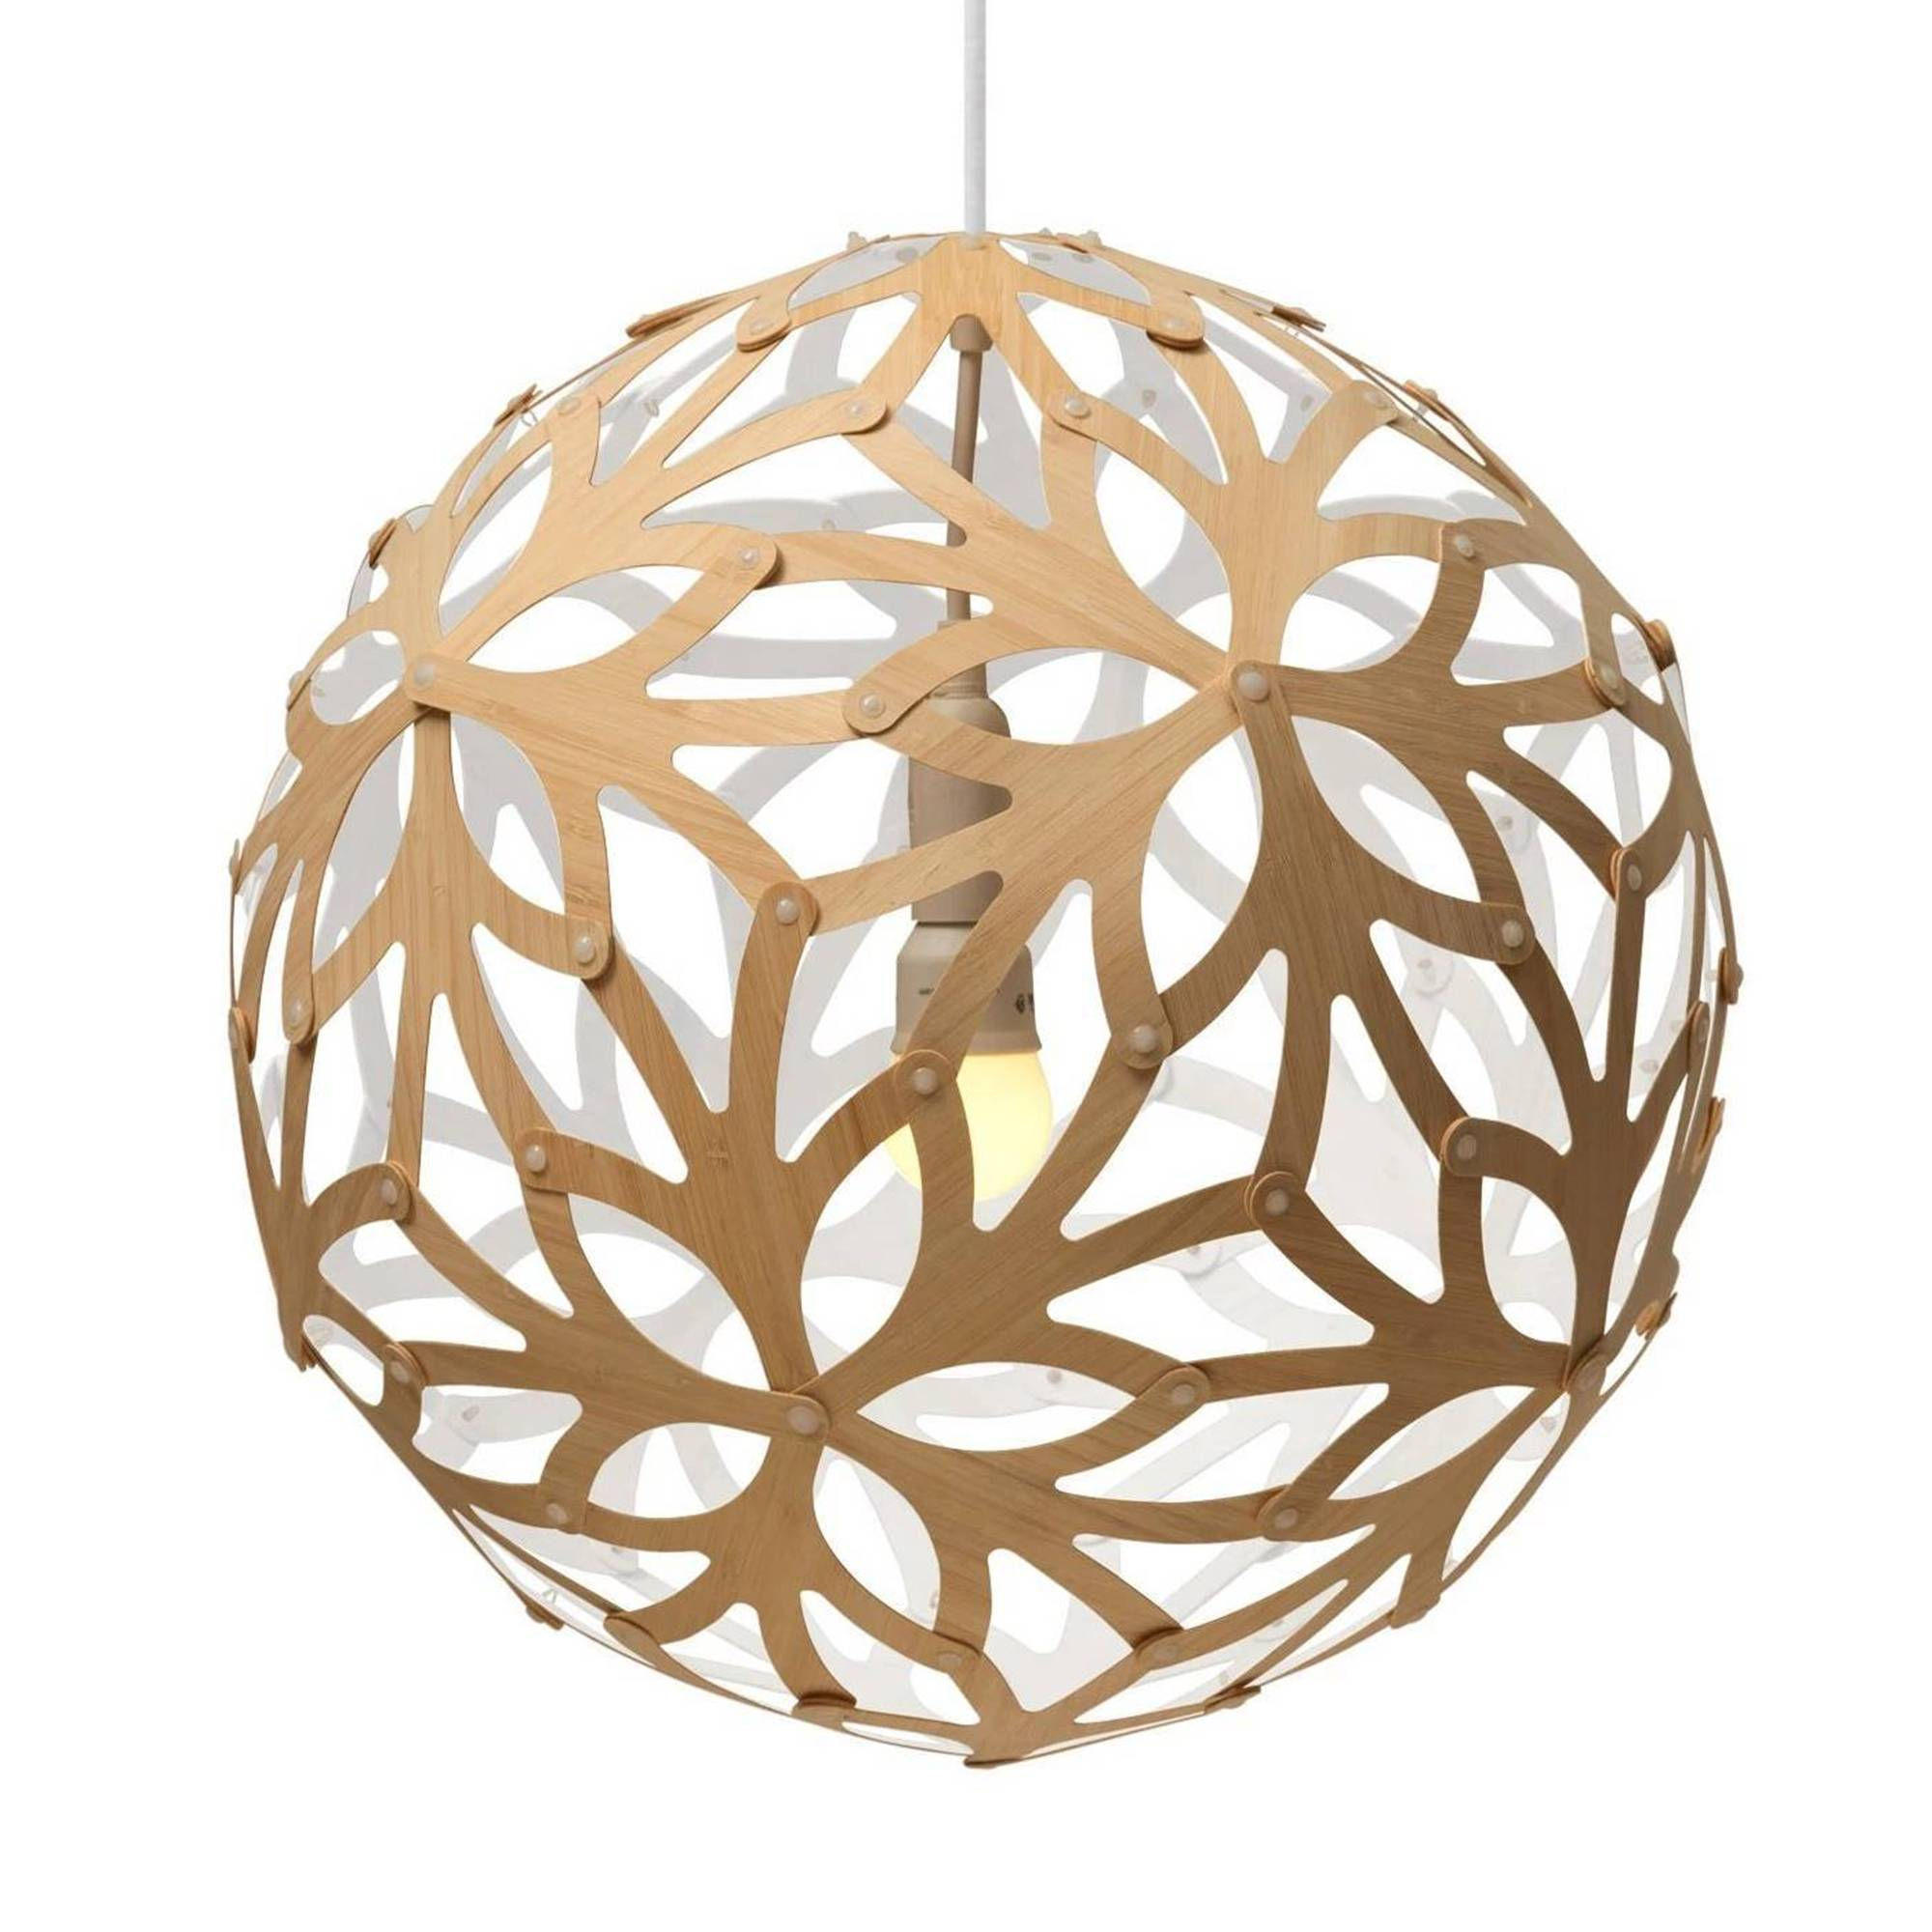 Floral Pendant Light: 1200 + White